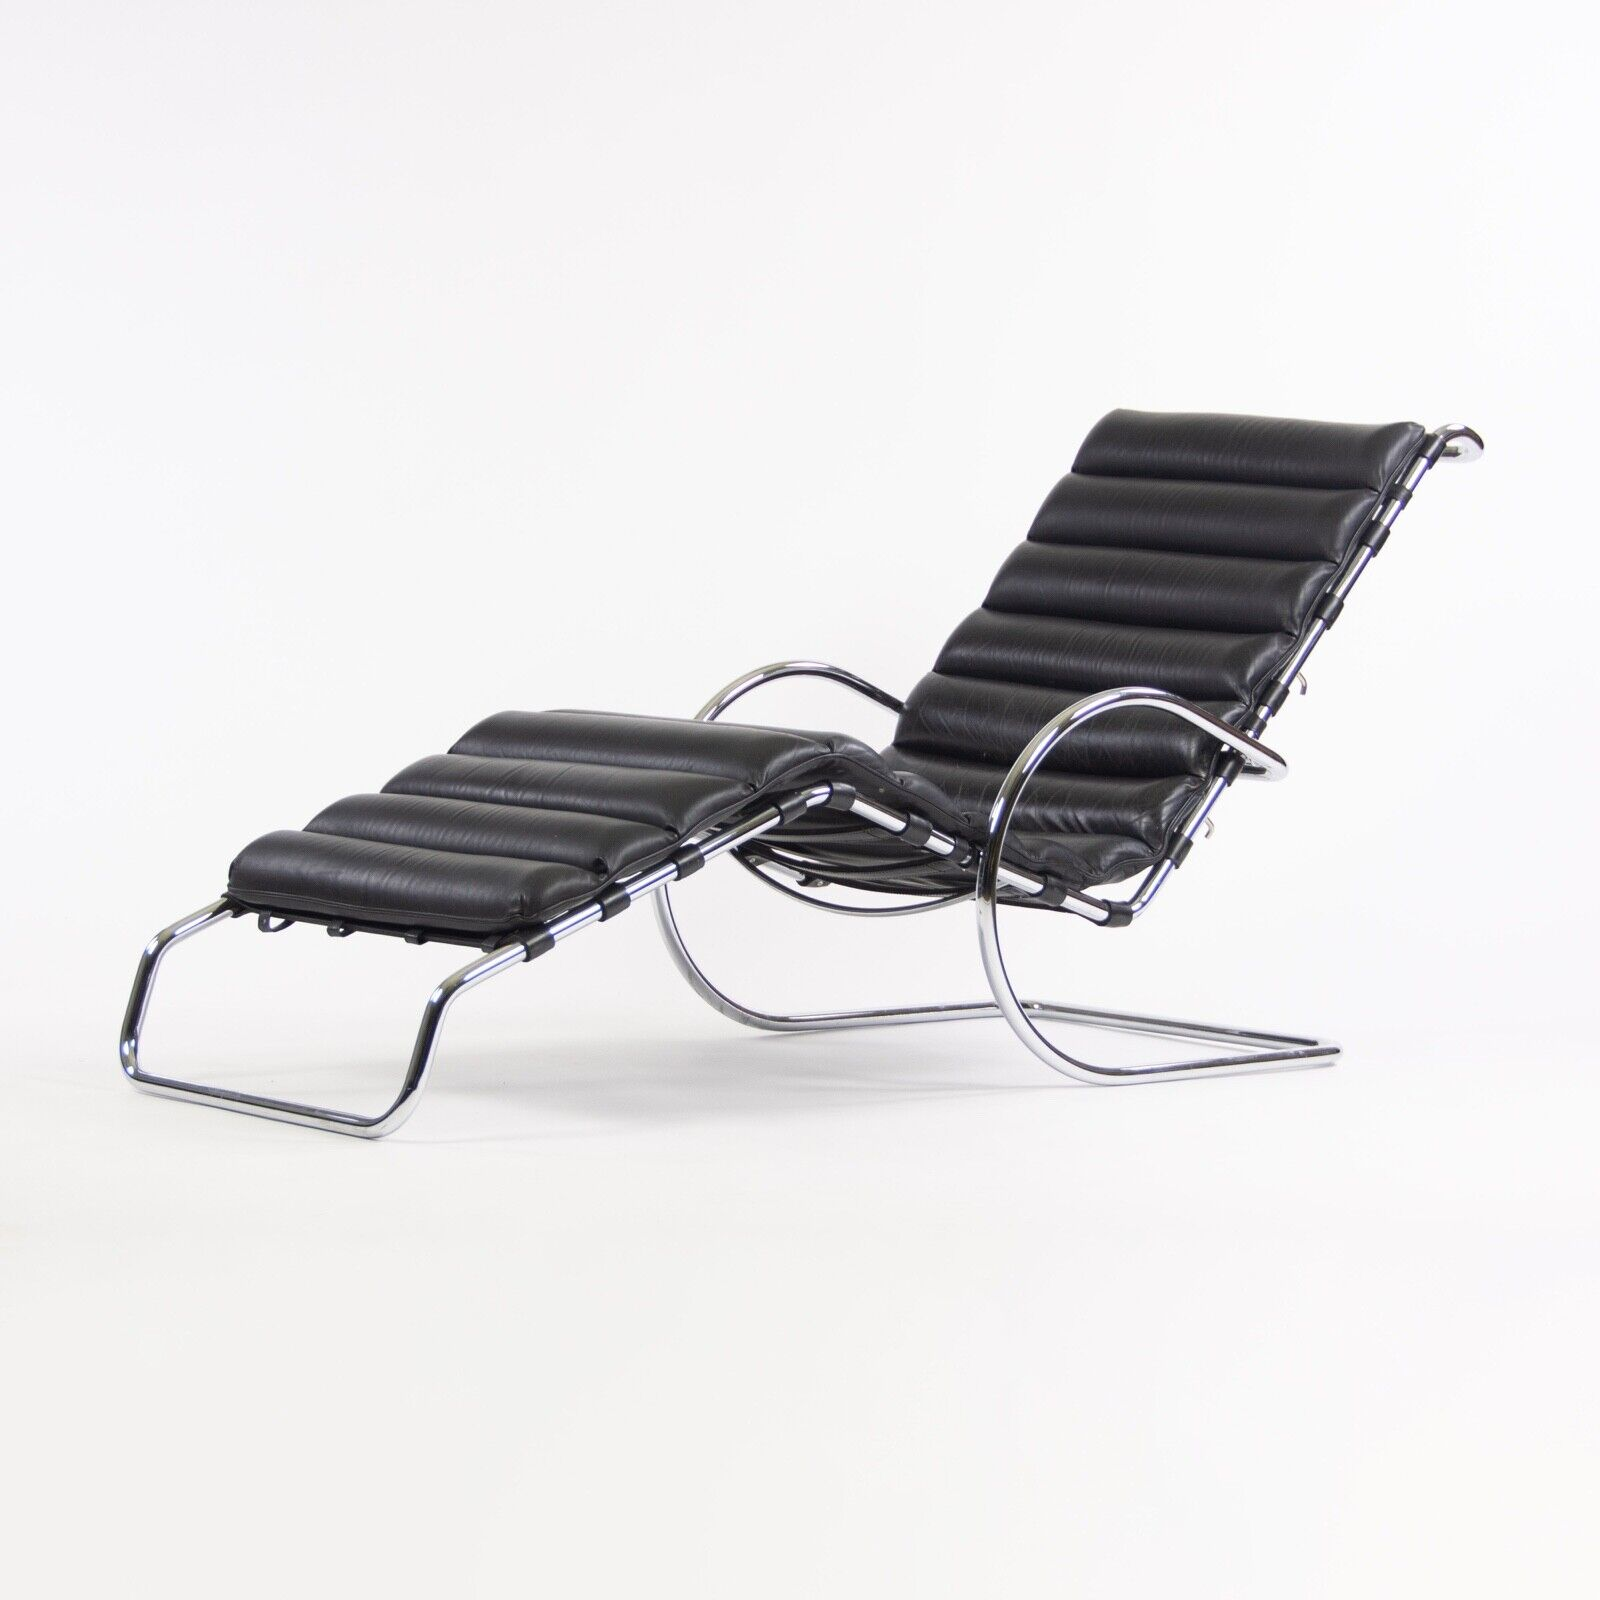 Chaise Brno Mies Van Der Rohe details about vintage knoll international mies van der rohe mr chaise  adjustable lounge chair